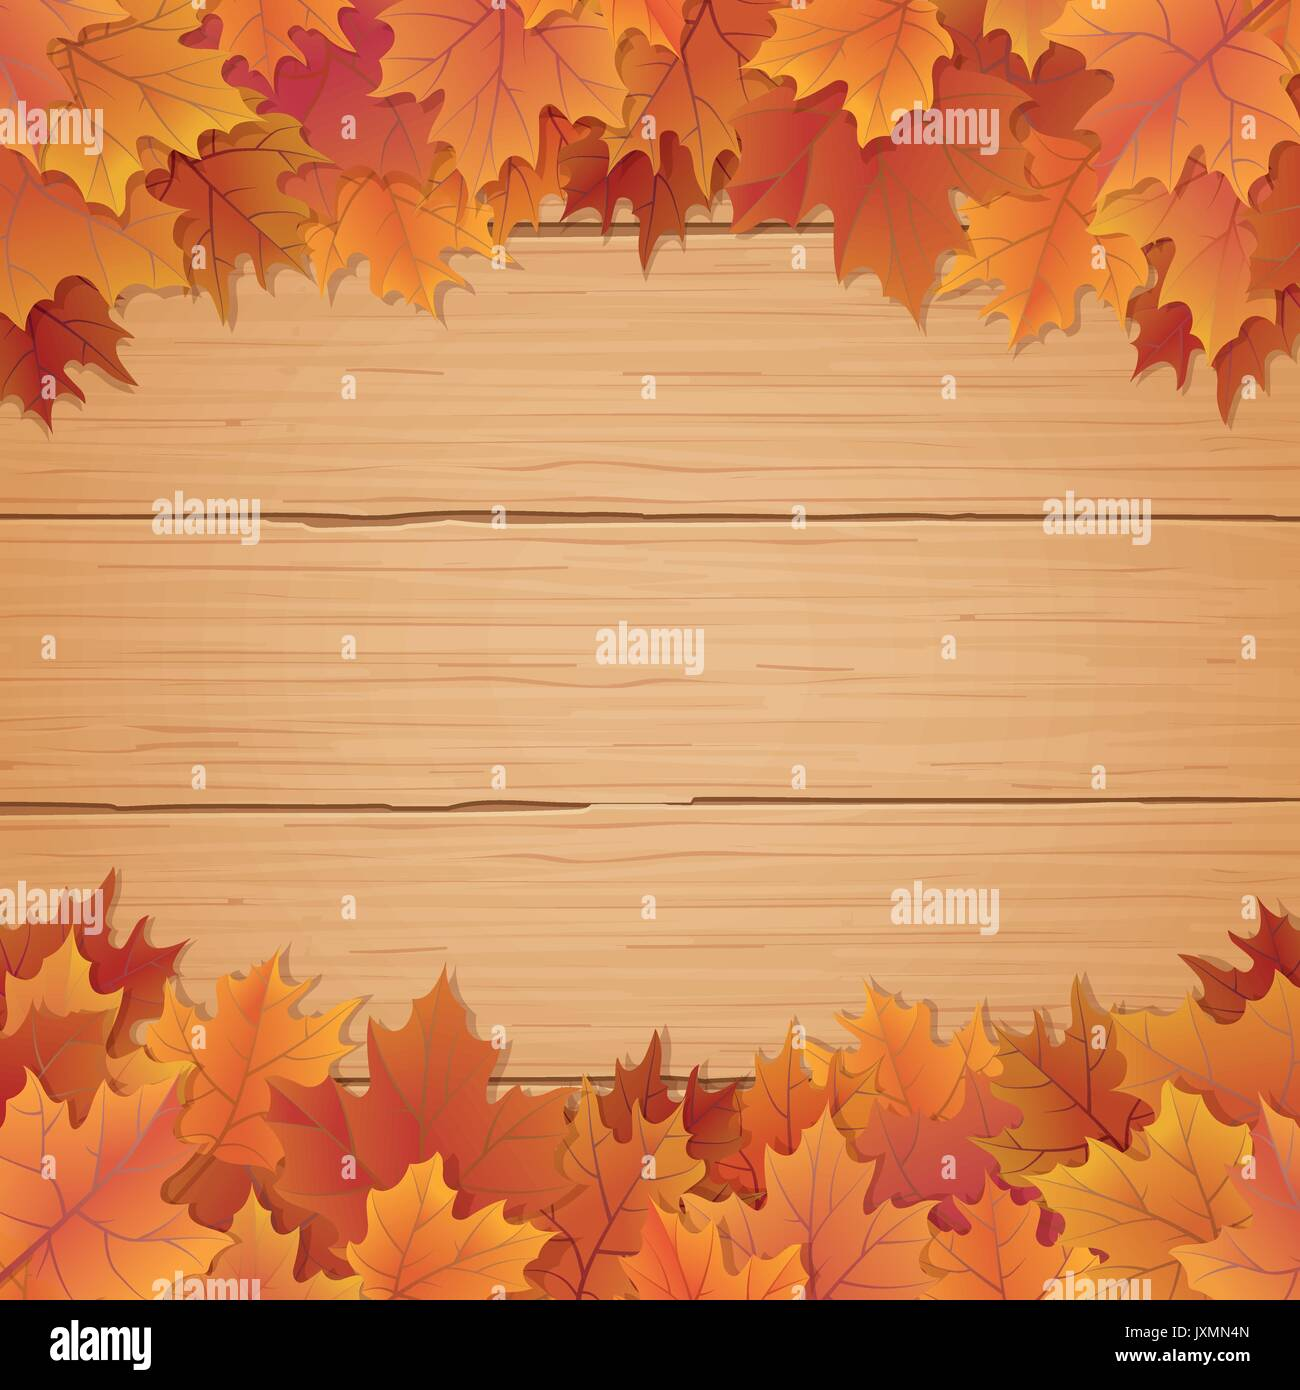 Fall leaves border on top and bottom with wooden background autumnal vector illustration - Stock Vector